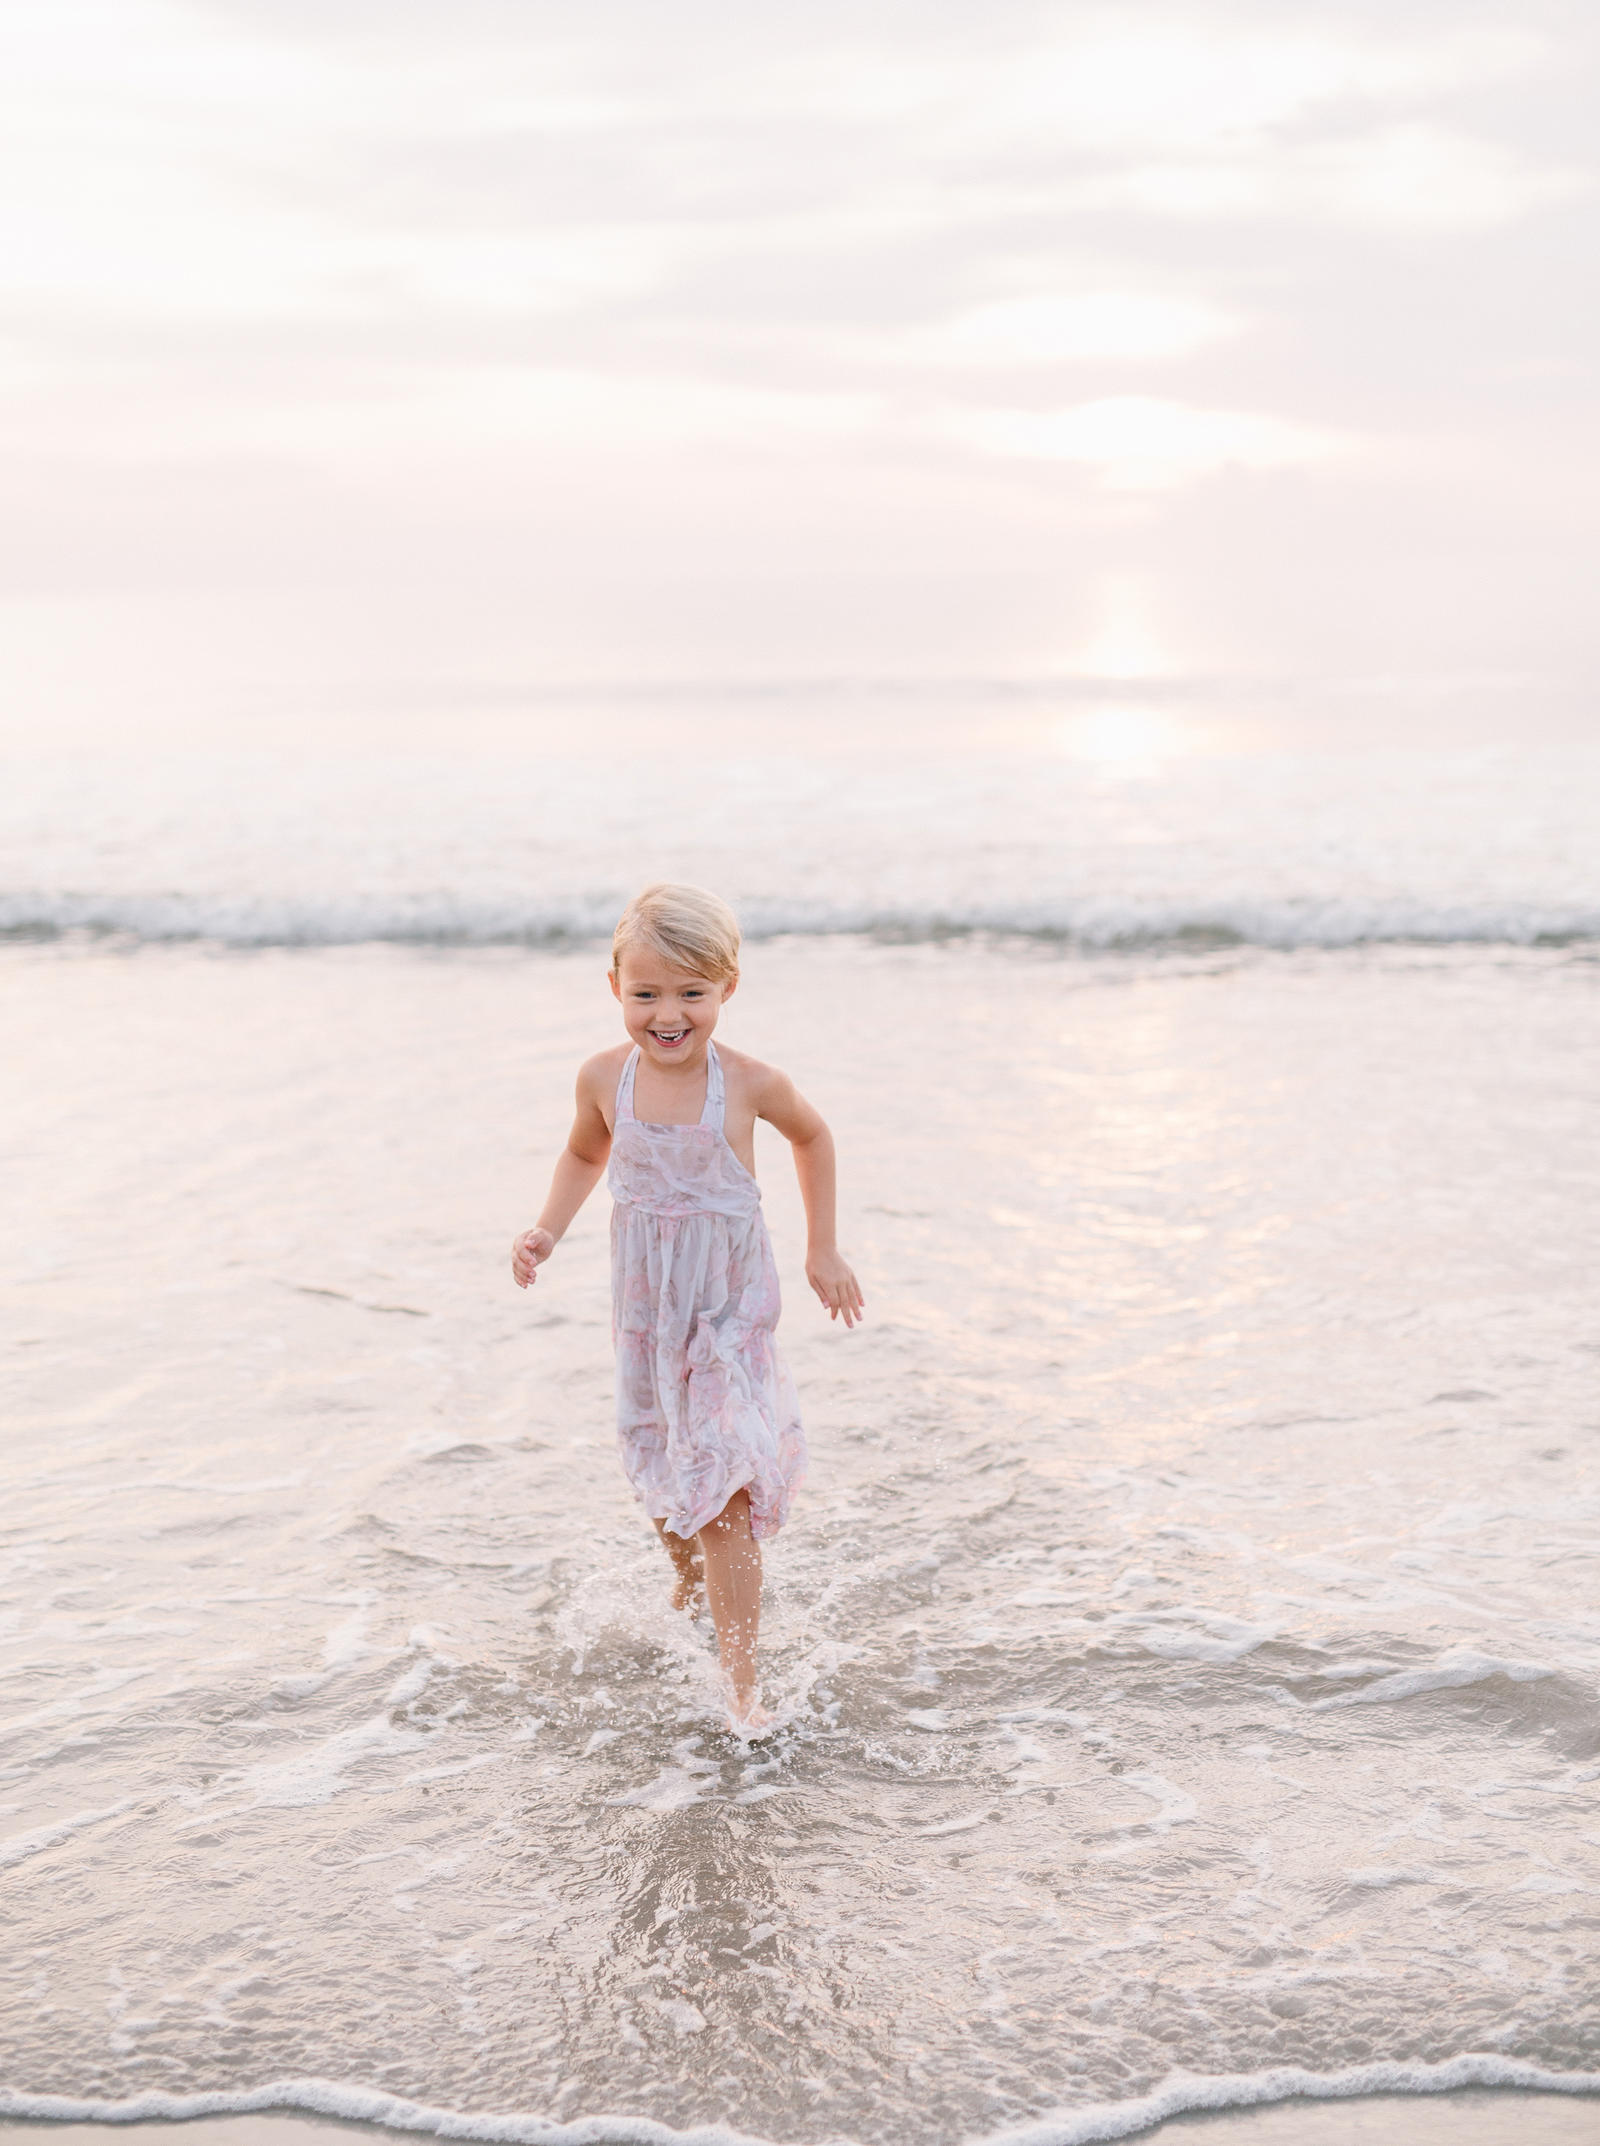 Atlanta Lifestyle Photography | A young child plays on the beach in shallow water.